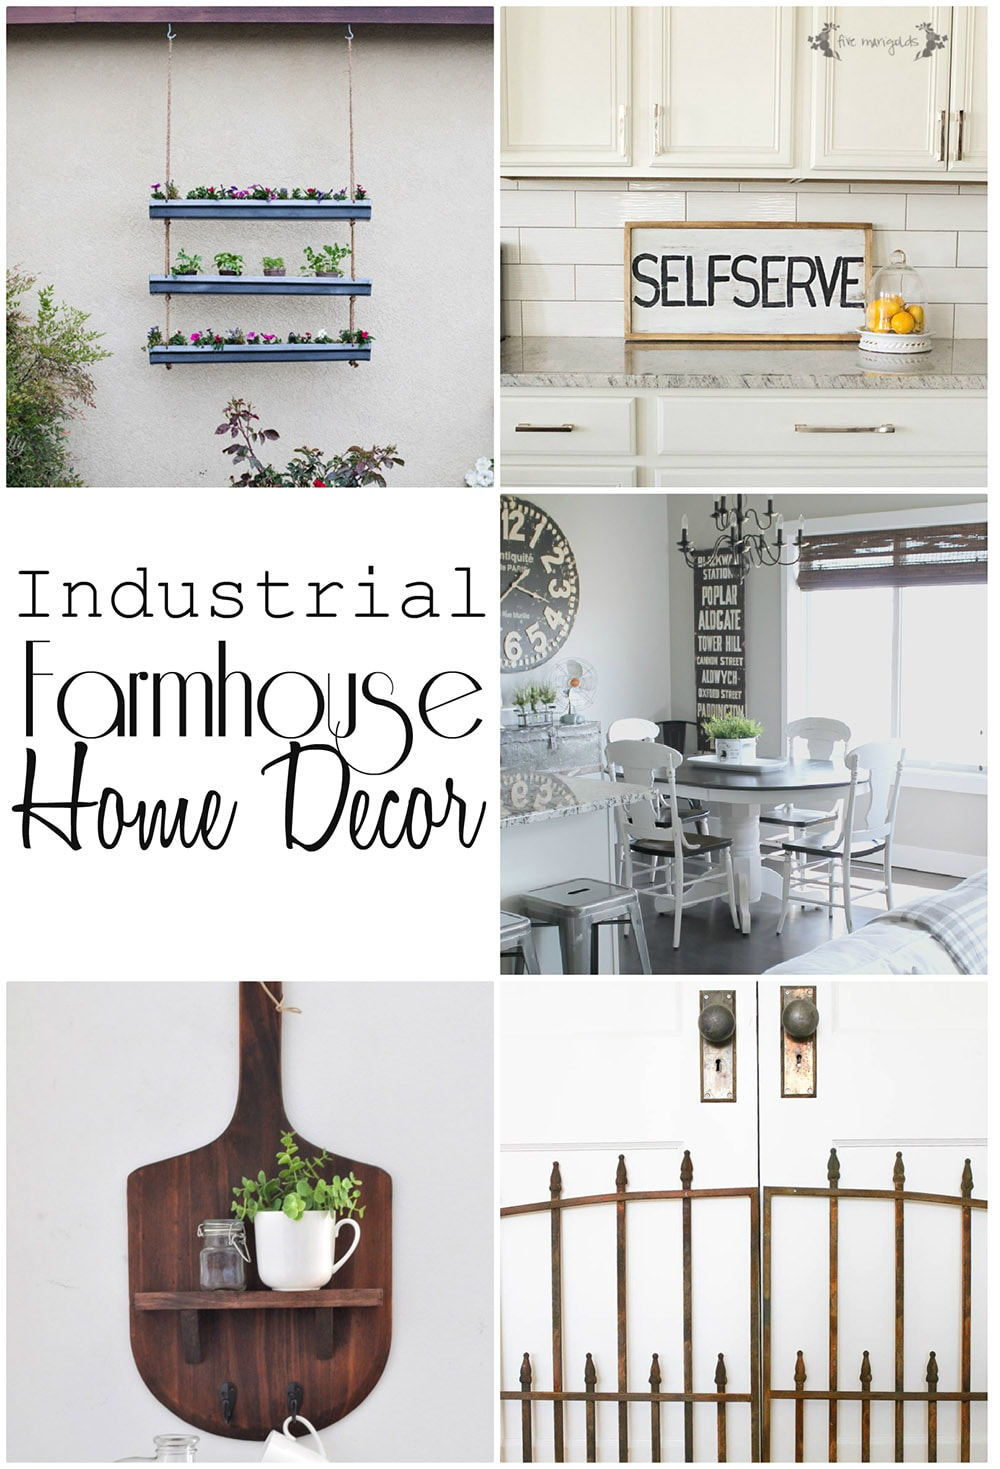 Industrial Farmhouse Home Decor Maison de Pax